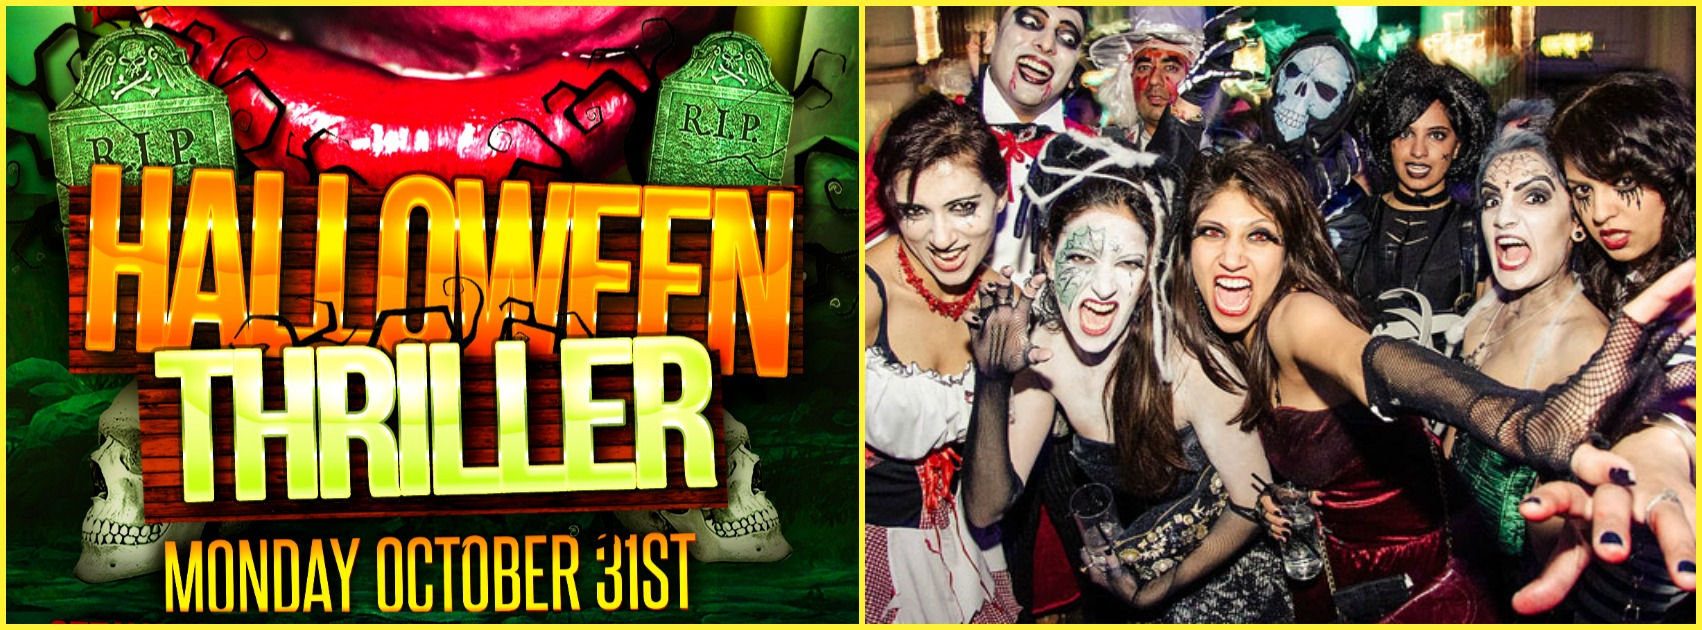 HALLOWEEN THRILLER @ FICTION NIGHTCLUB | MONDAY OCT 31ST Tickets ...